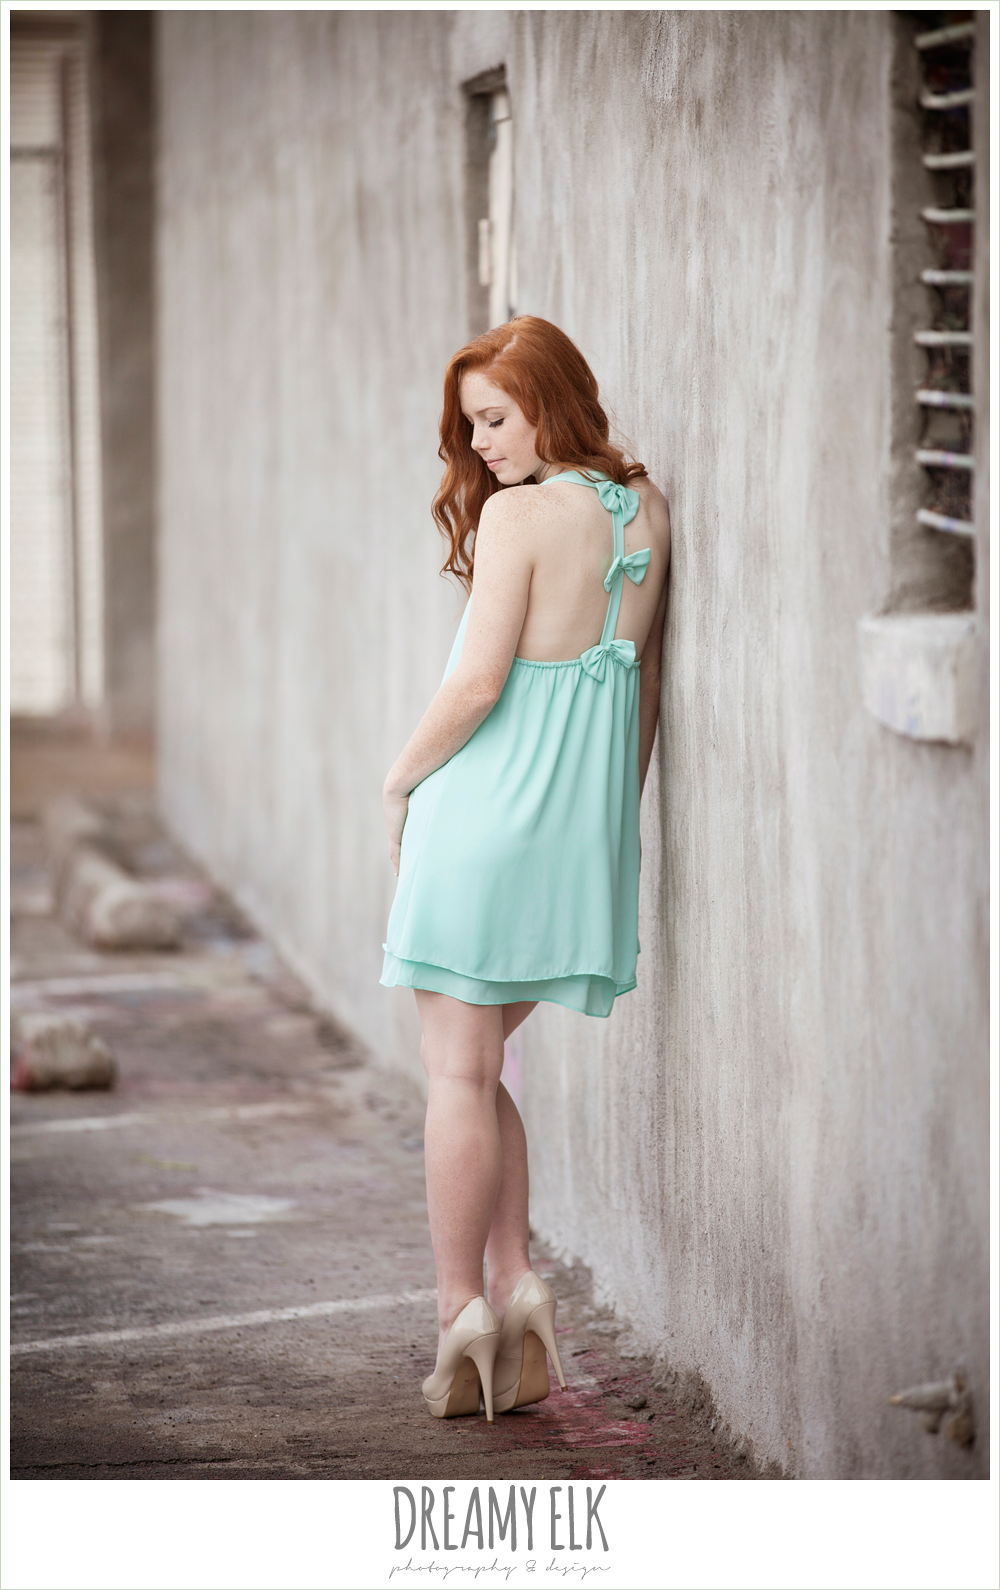 urban high school senior girl photo, deep ellum, texas {dreamy elk photography and design}